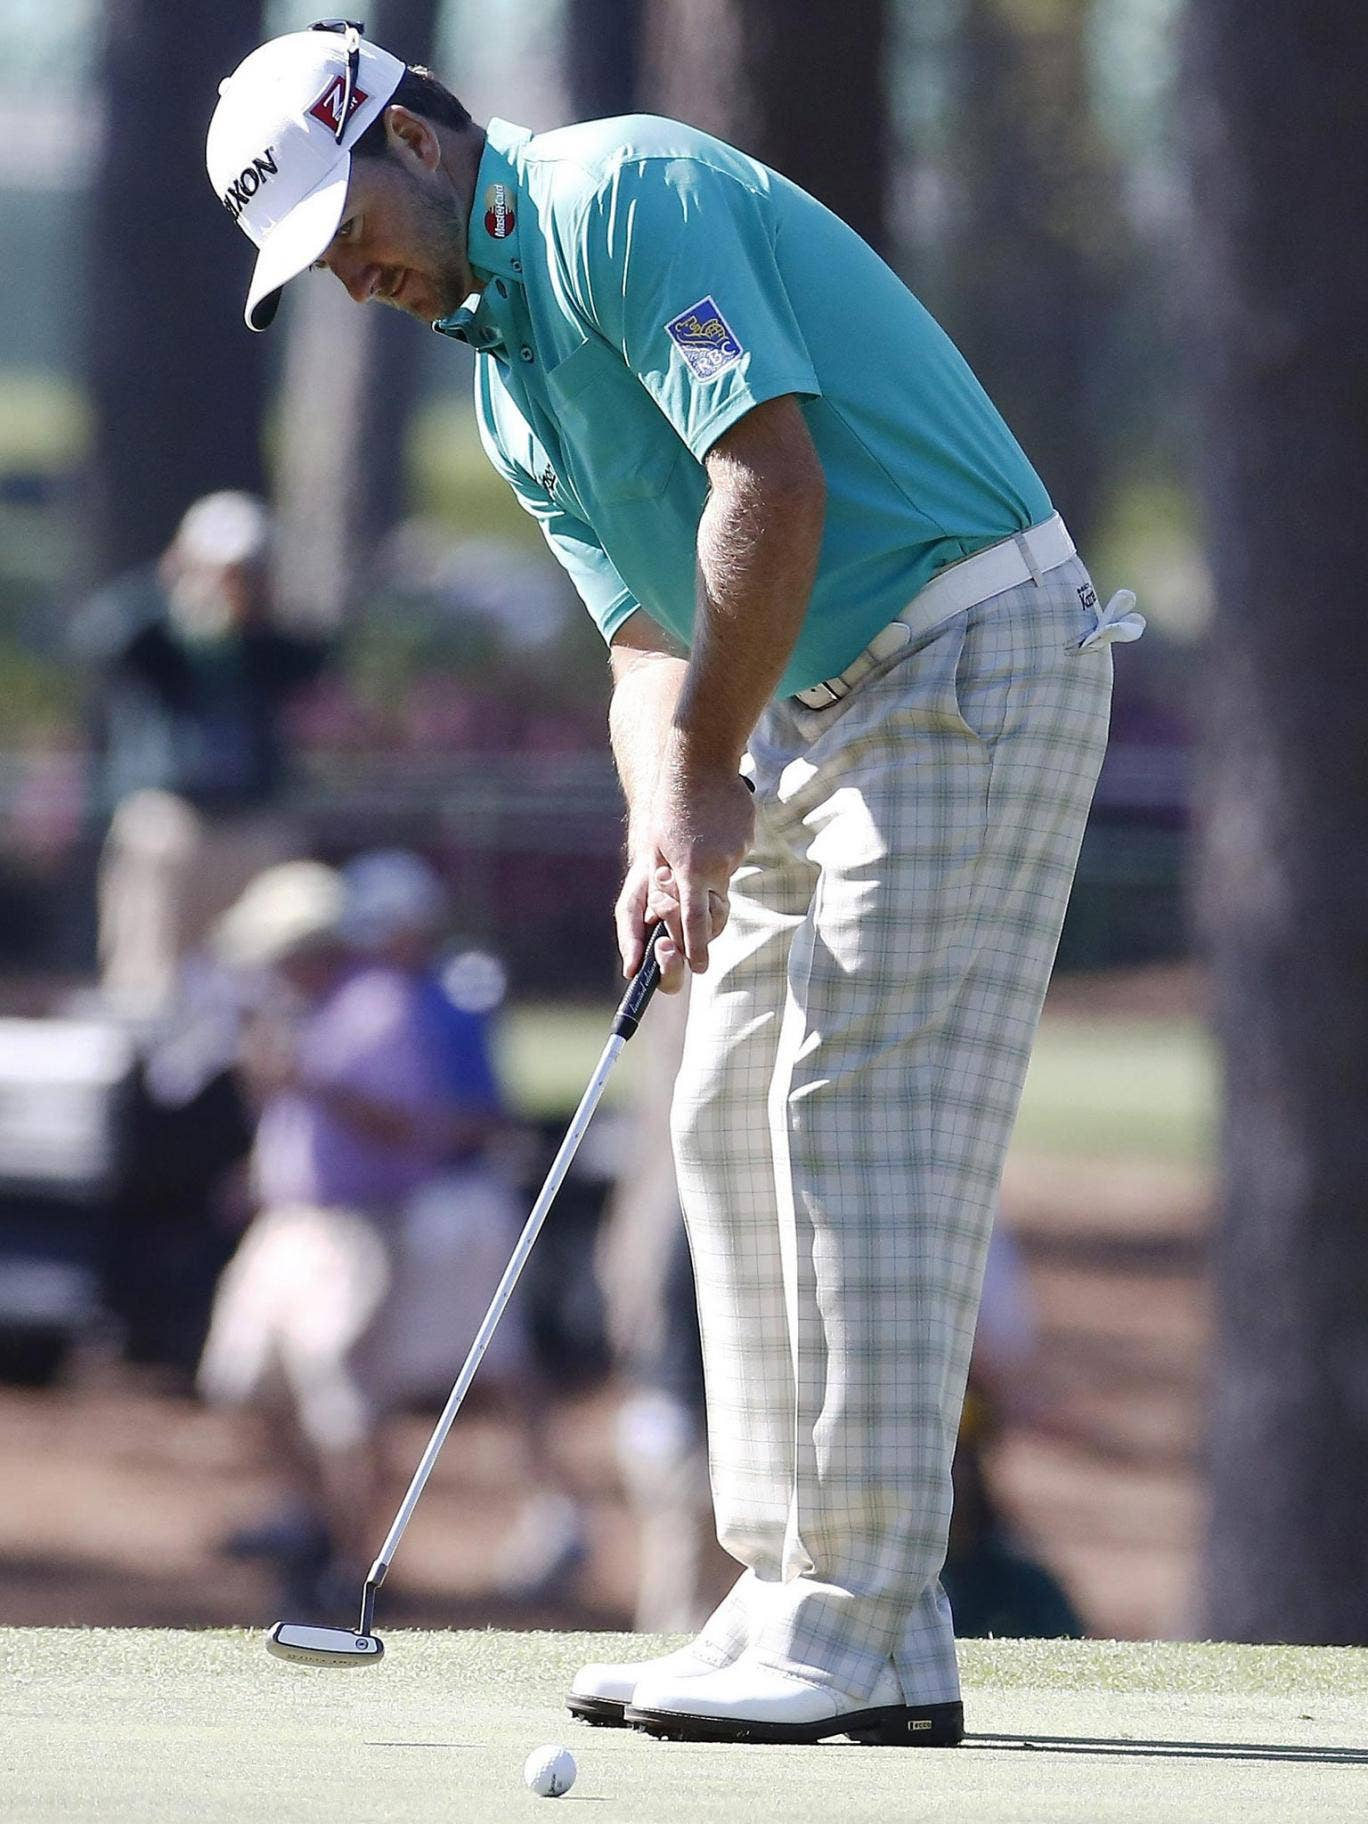 Graeme McDowell is the best putter on the PGA Tour this season but even he struggled on the fast greens yesterday